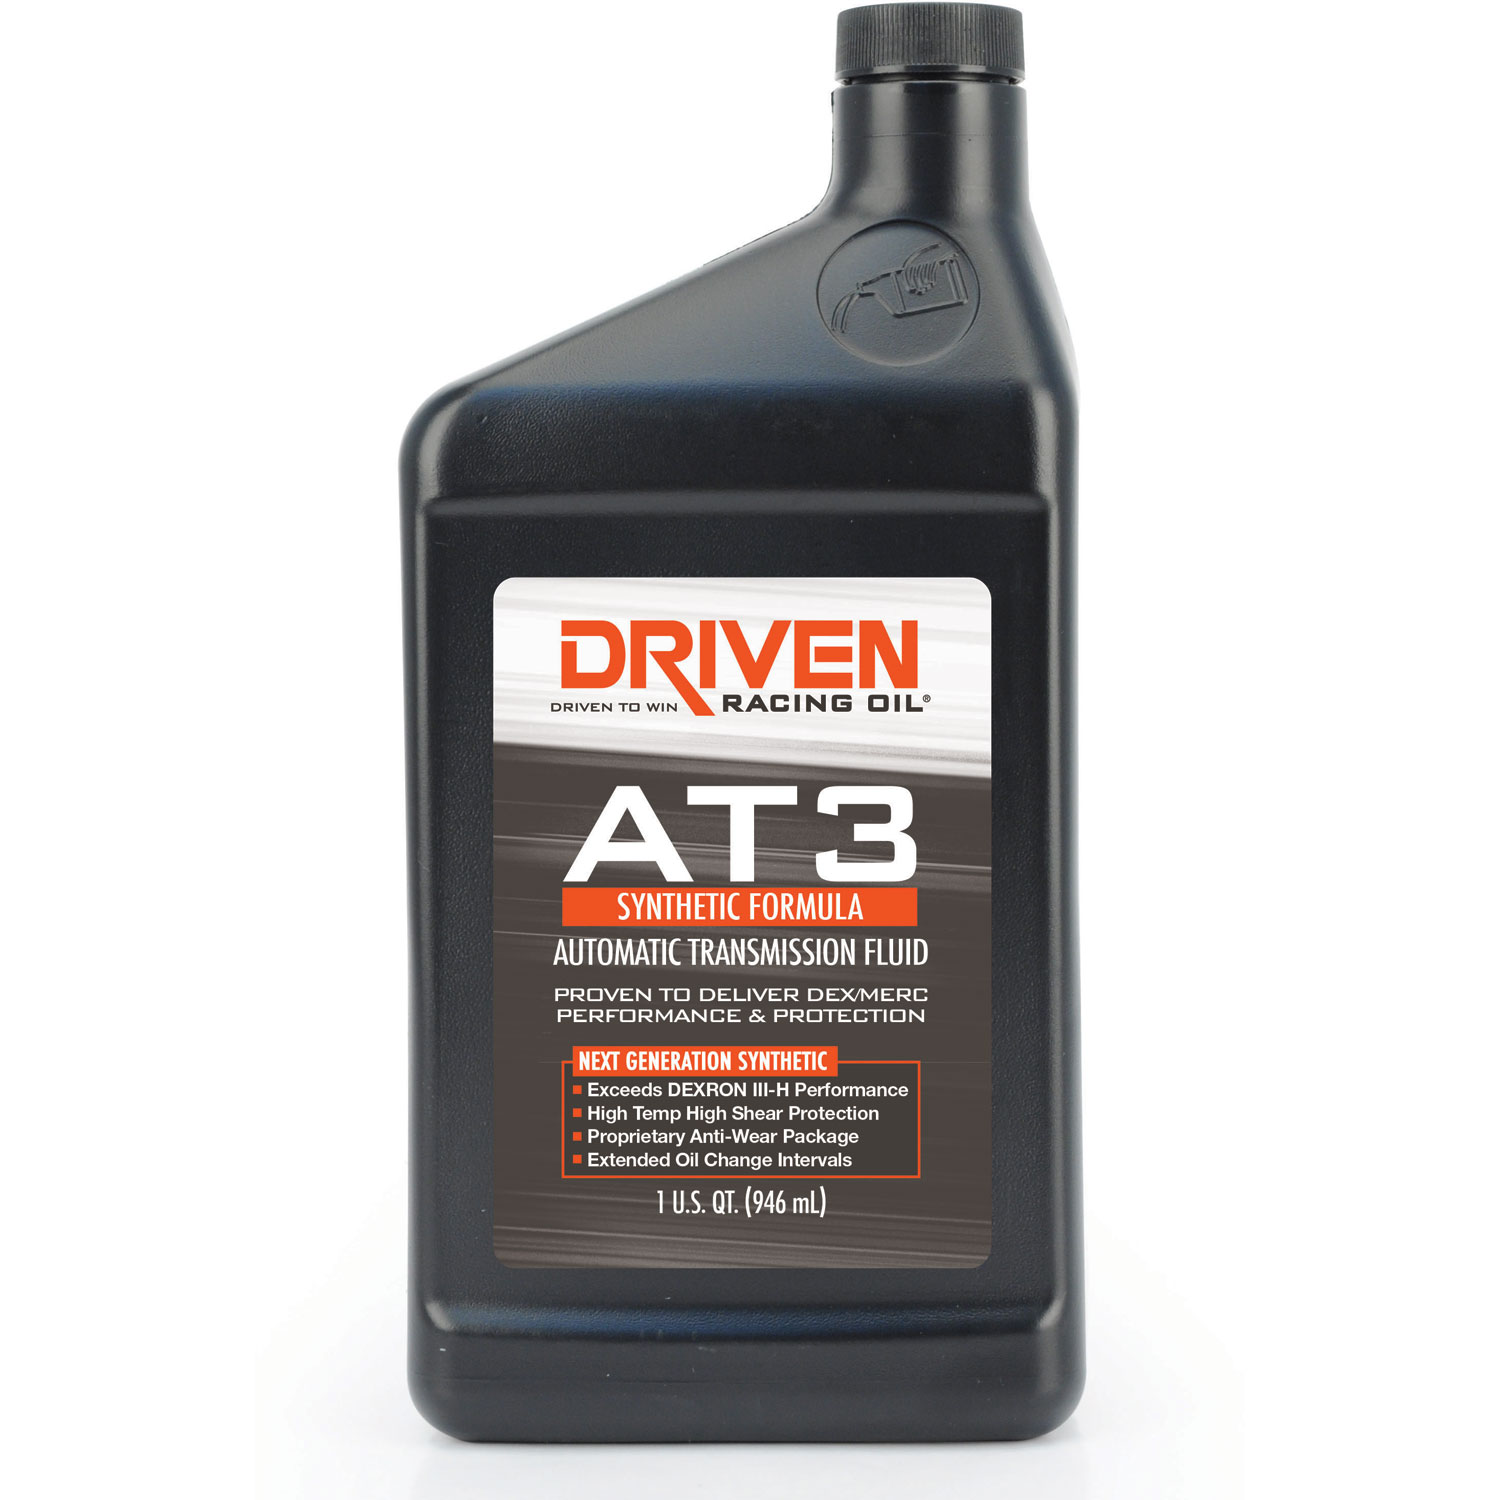 Driven Racing Oil AT3 Synthetic Dex/MERC Auto. Transmission Fluid - Quart